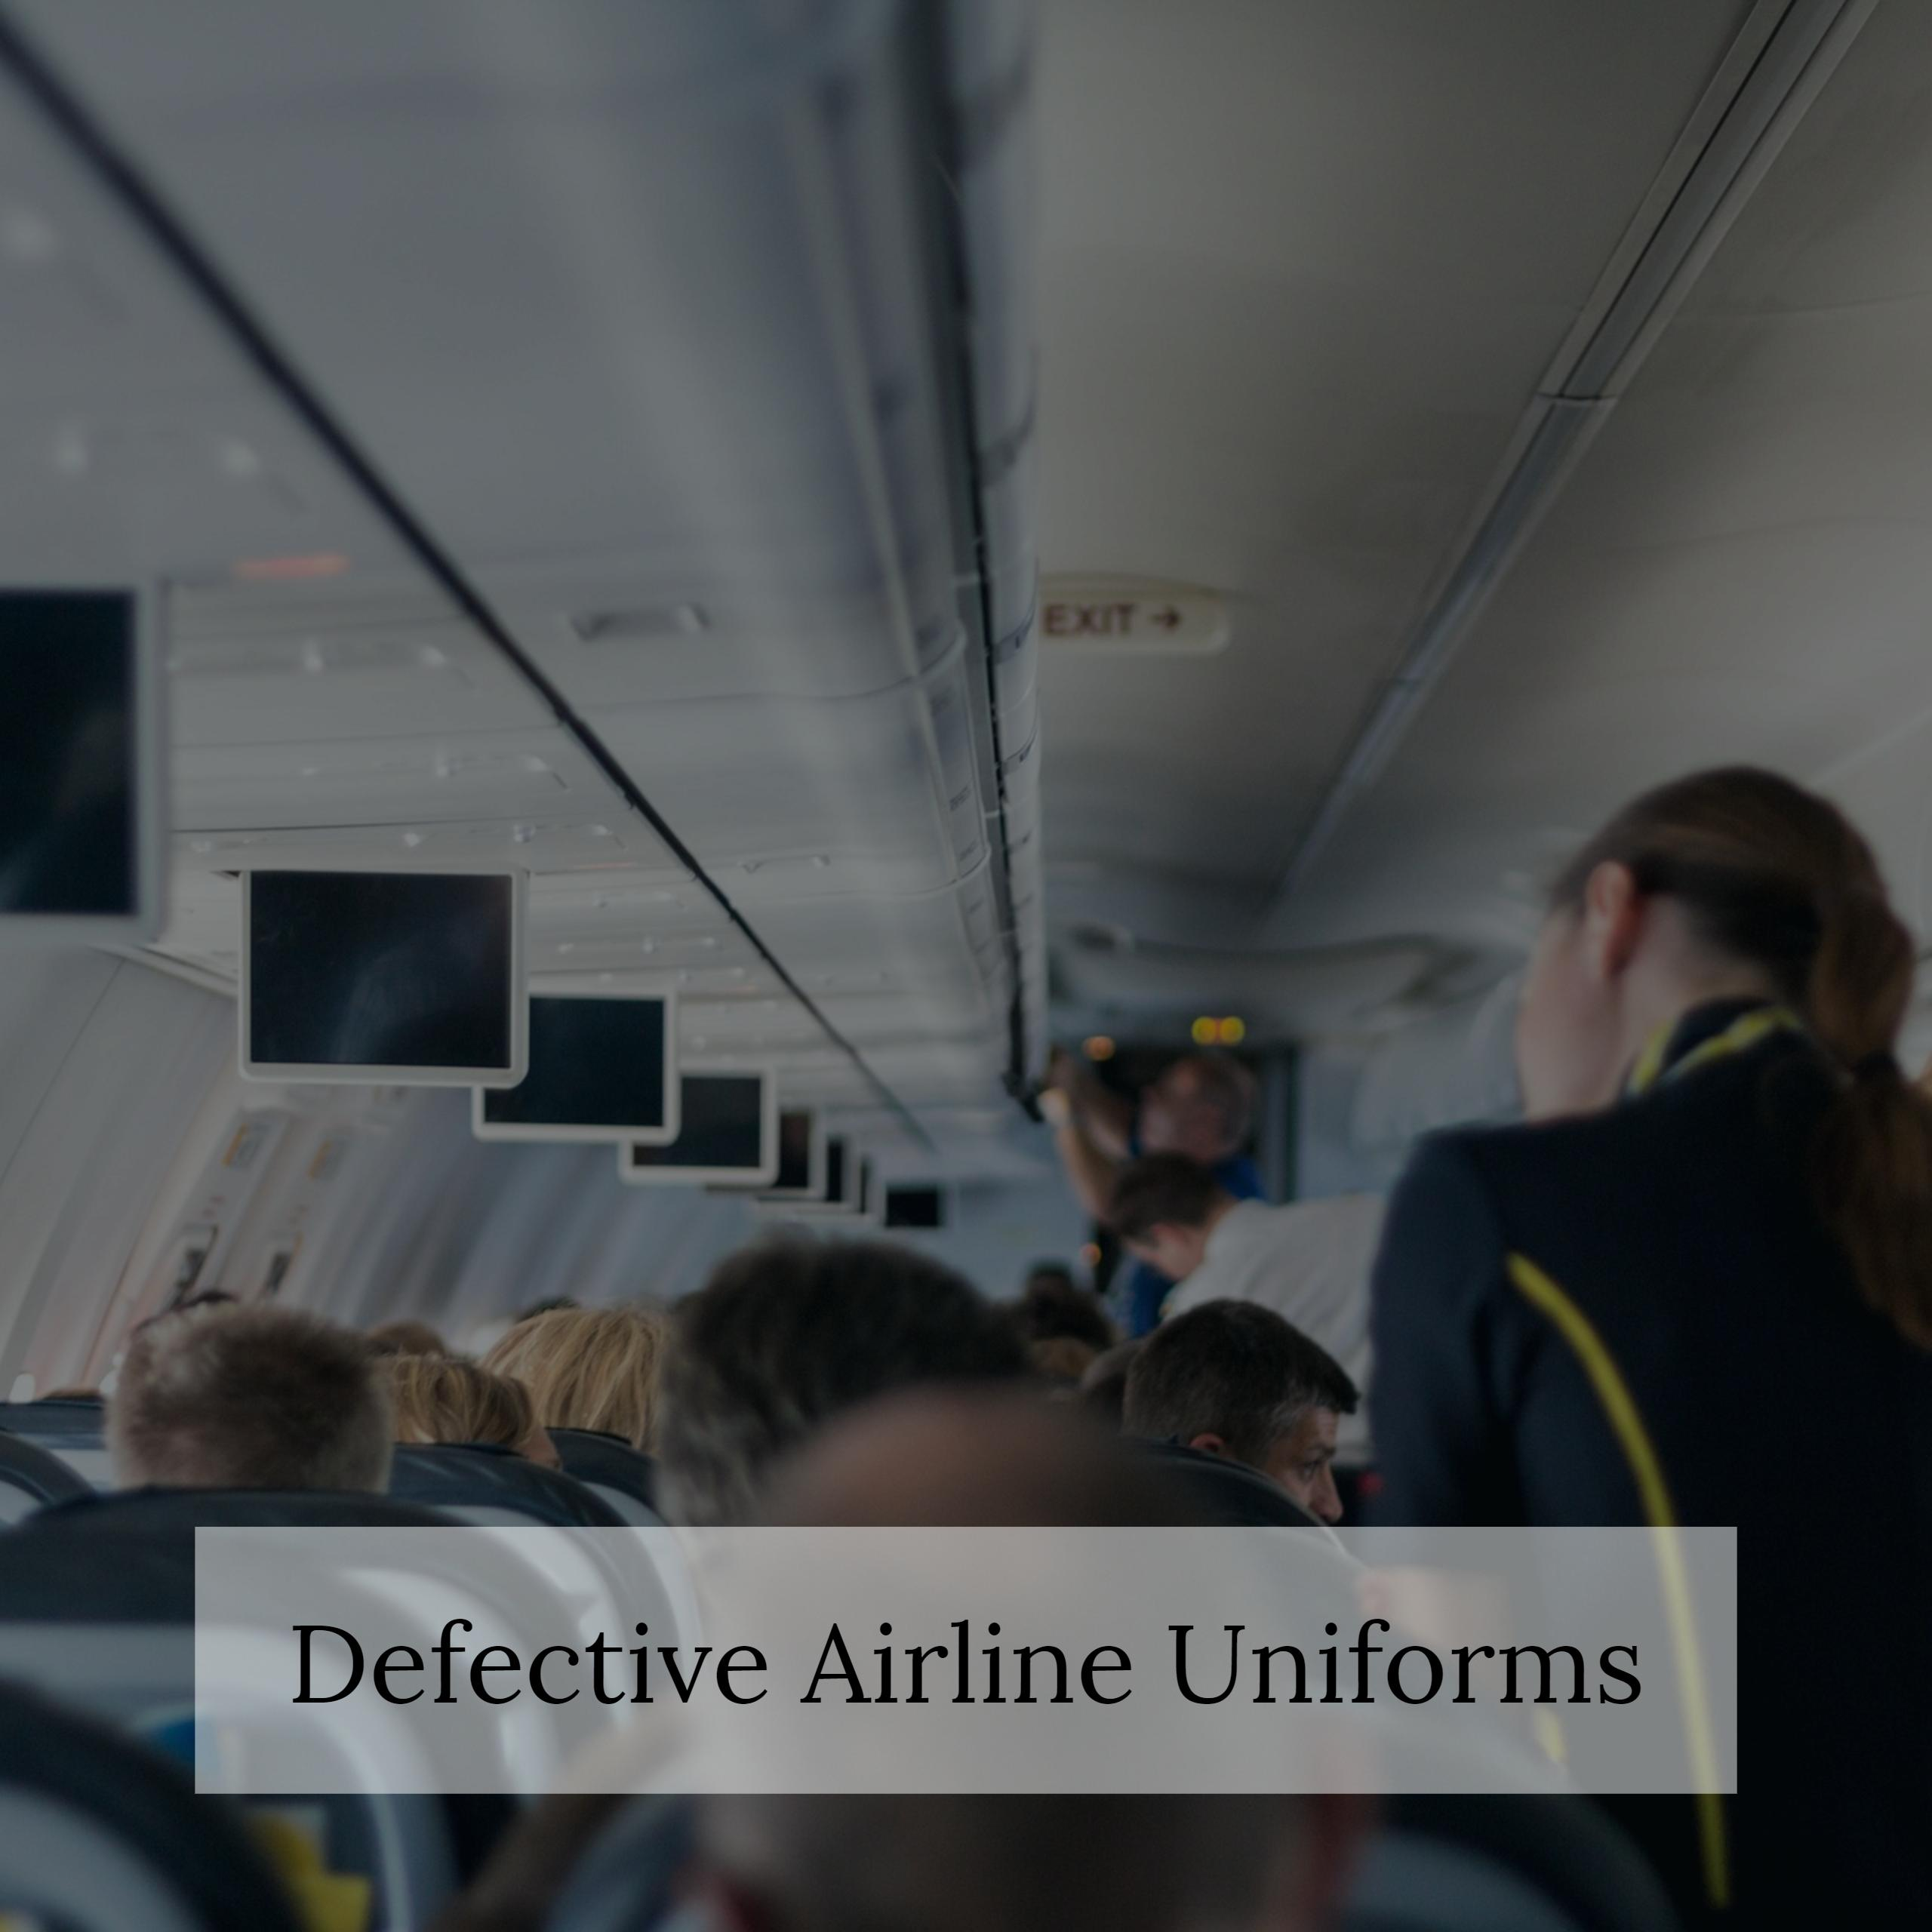 Aviation Defective Products Lawyer Jonathan C. Reiter Discusses Airline's Uniforms Causing Sickness